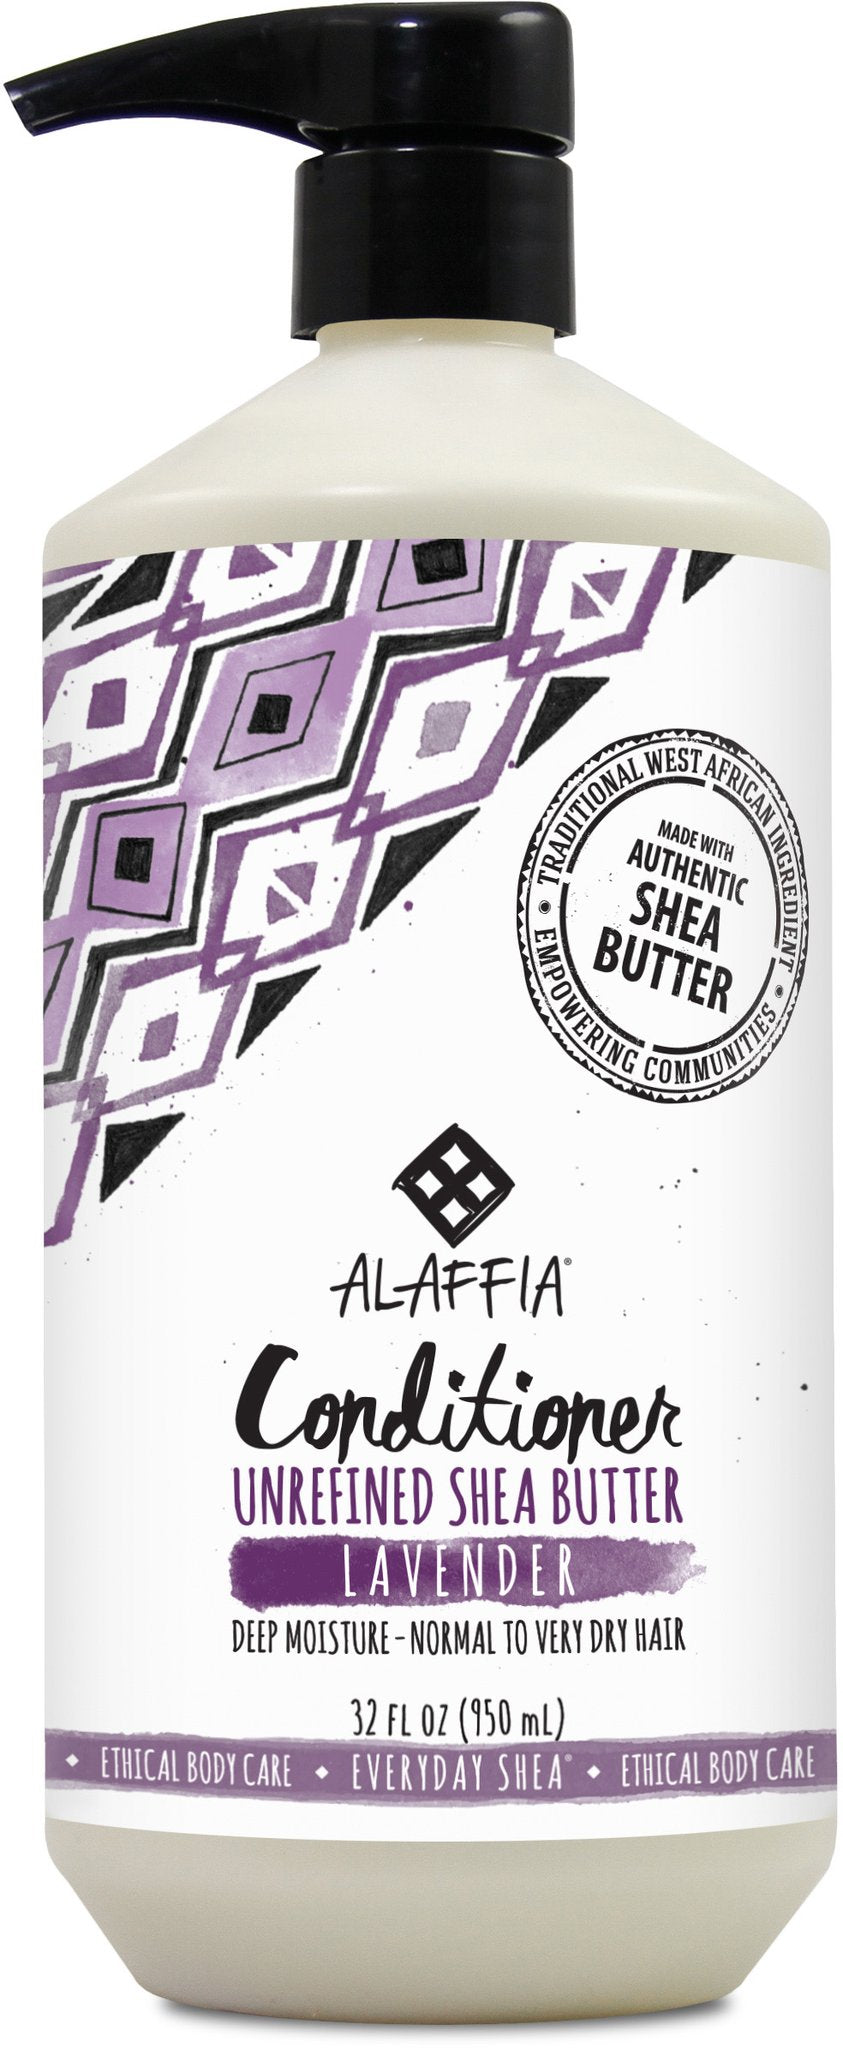 ALAFFIA Everyday Shea Lavender Conditioner 950ml